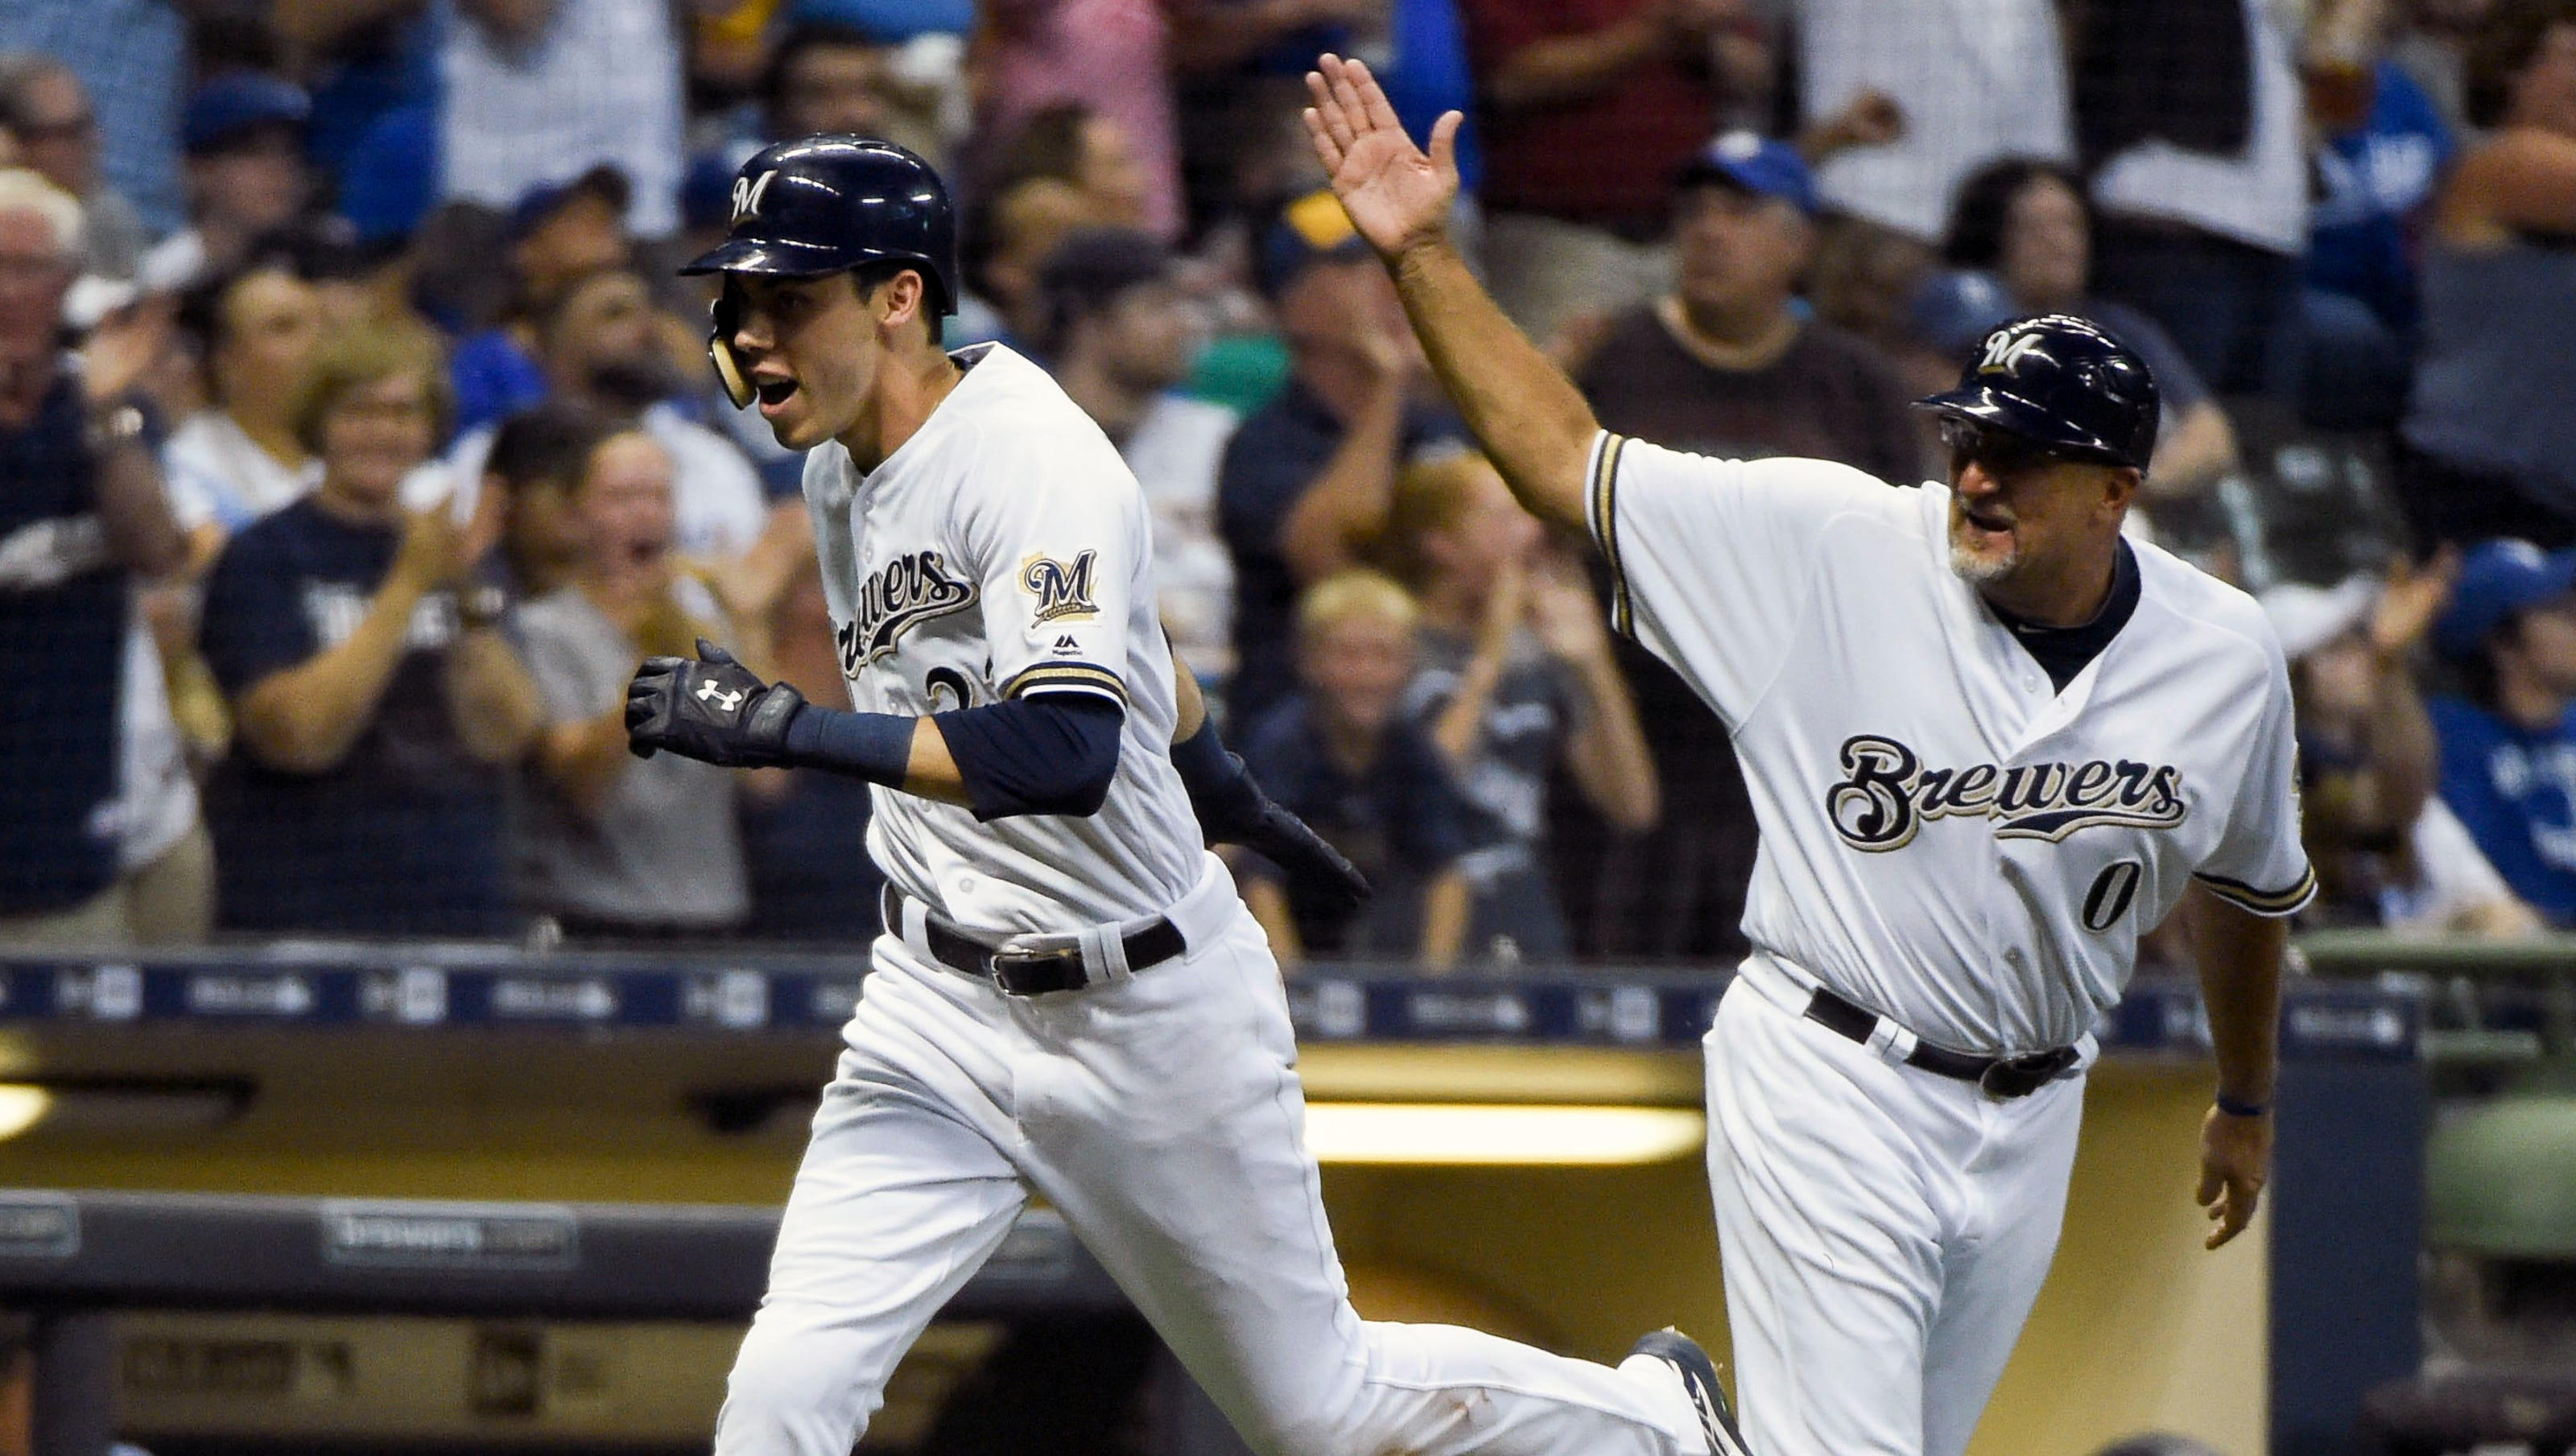 636678068023613996-brewers22p1-1-